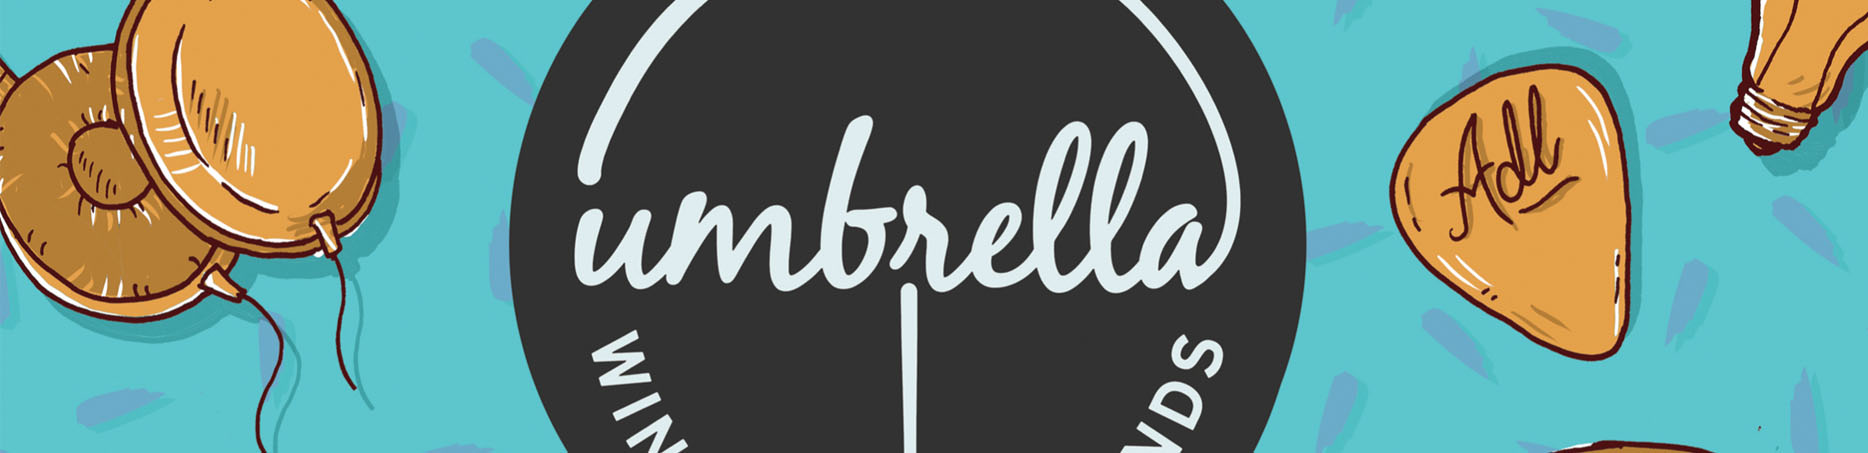 Umbrella: Winter City Sounds returns to ignite Adelaide's Winter